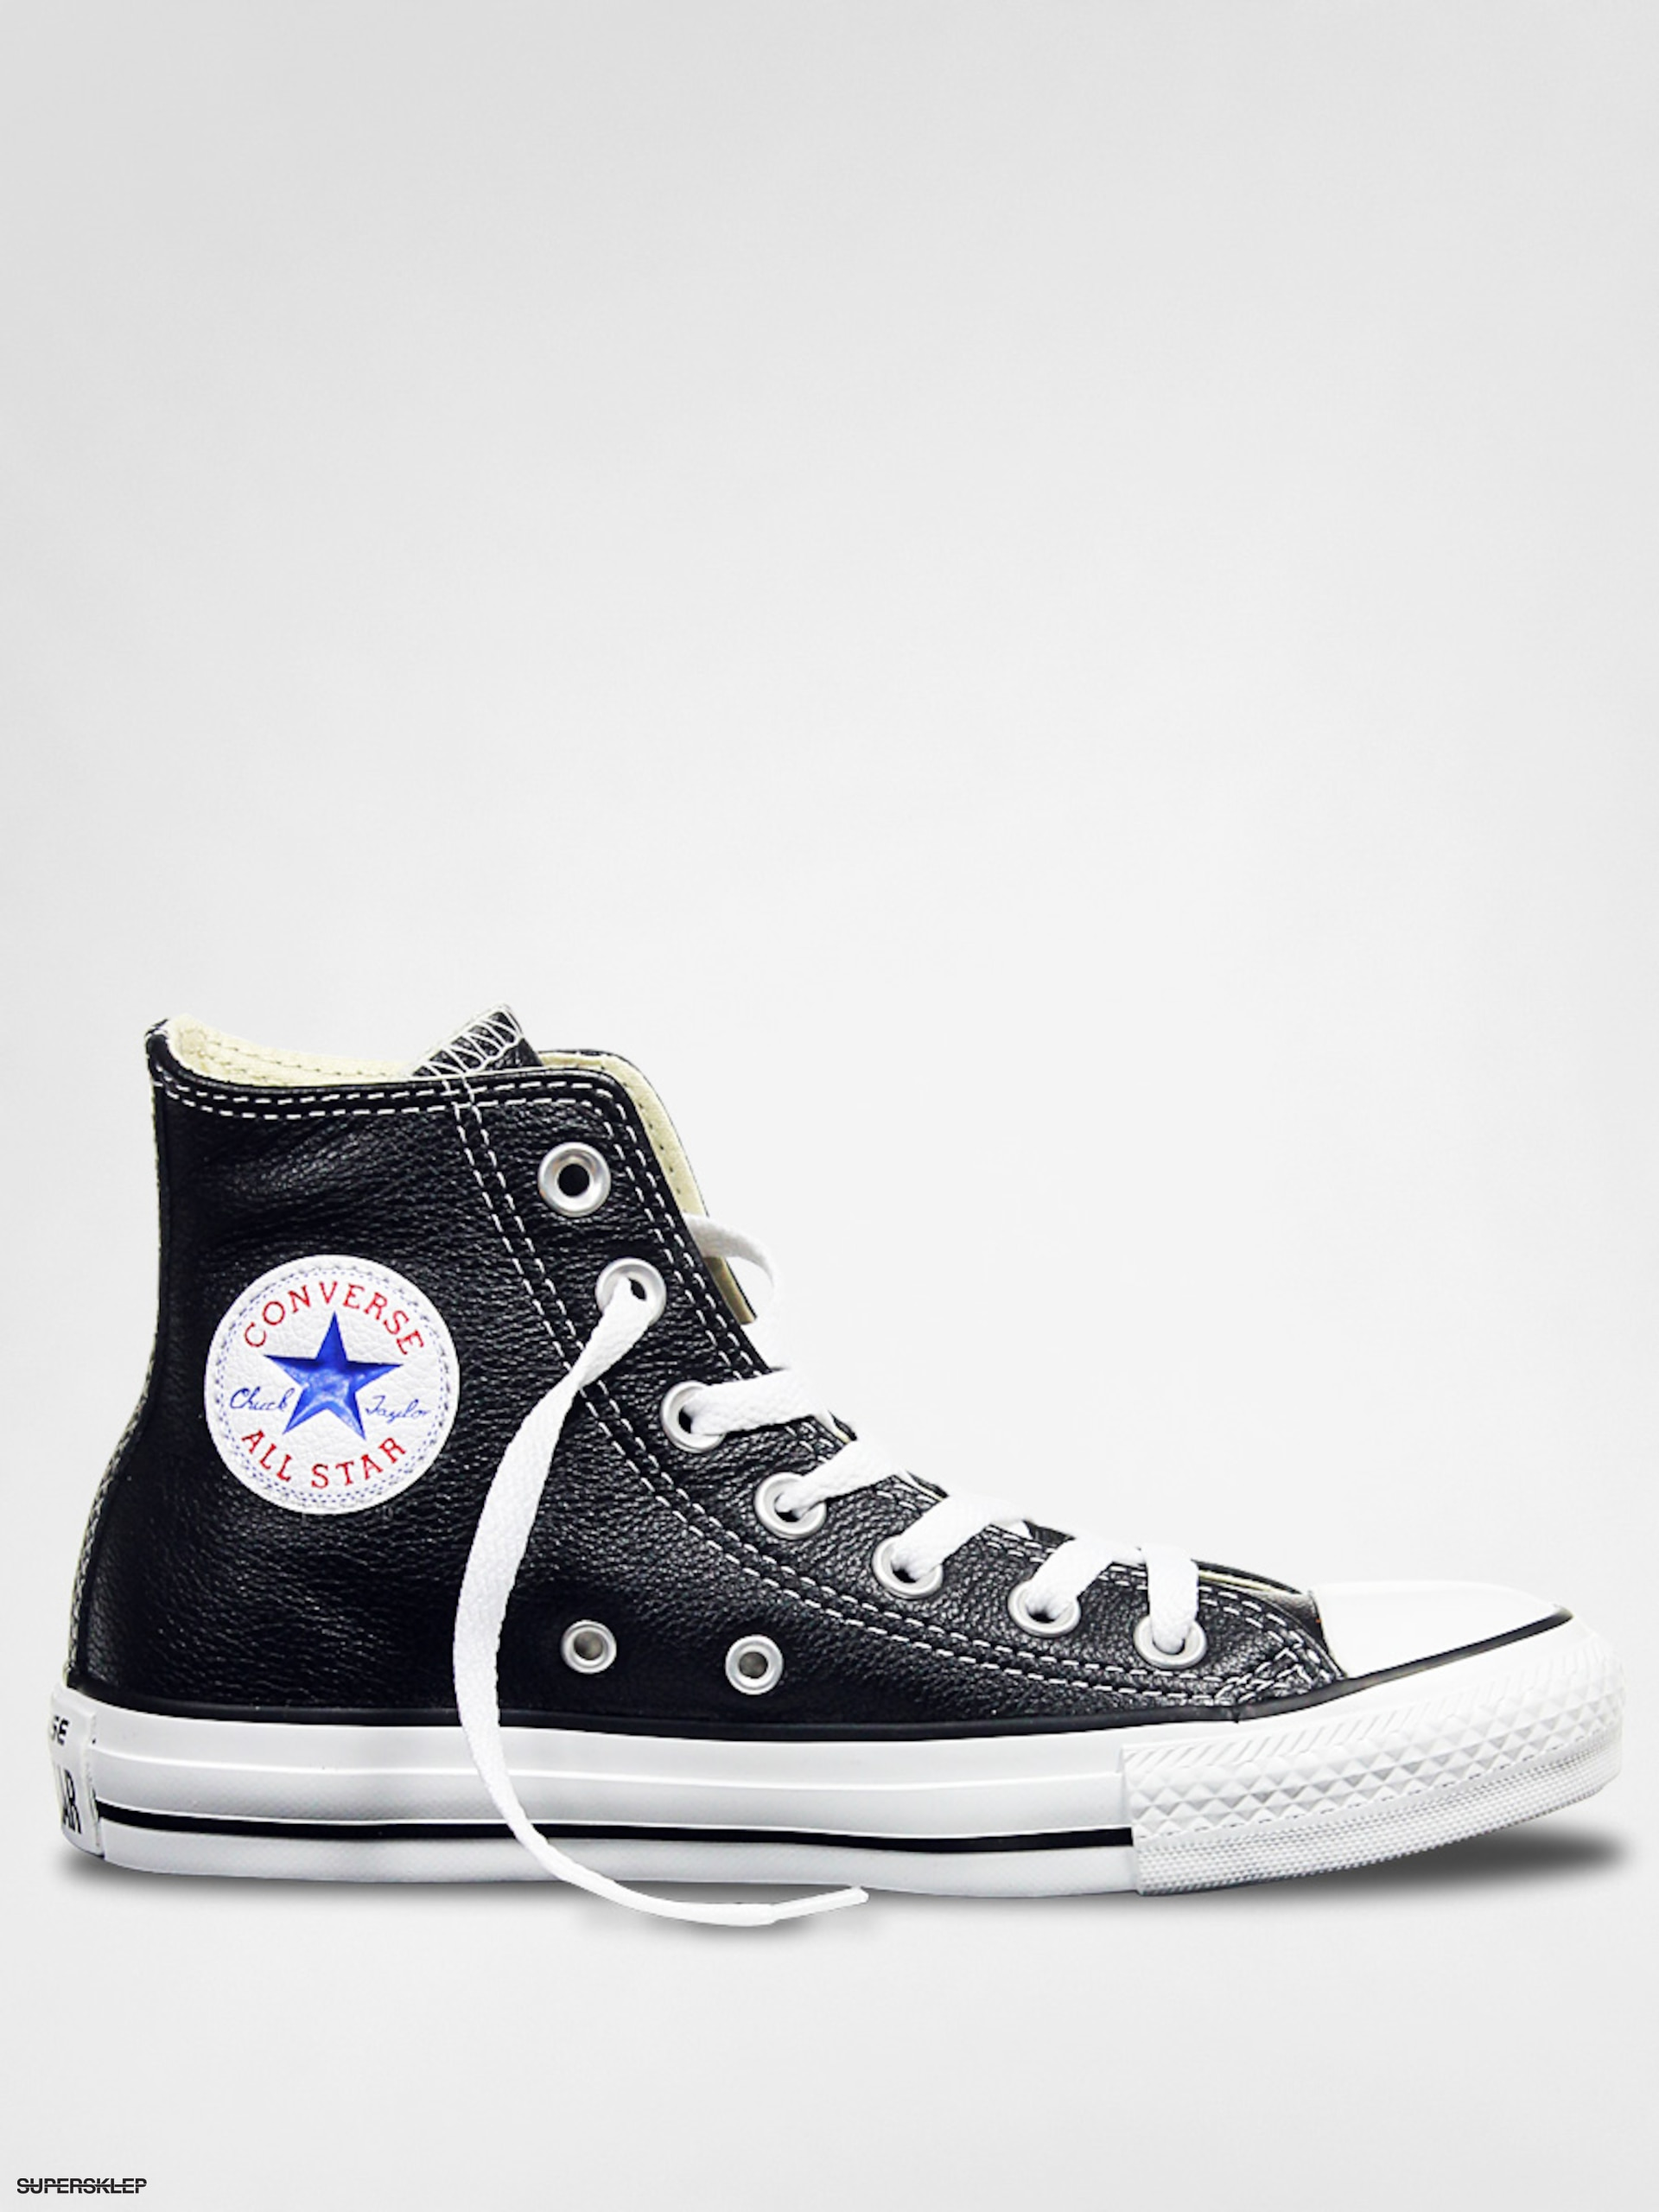 Trampki Converse Chuck Taylor All Star Hi Leather 132170C